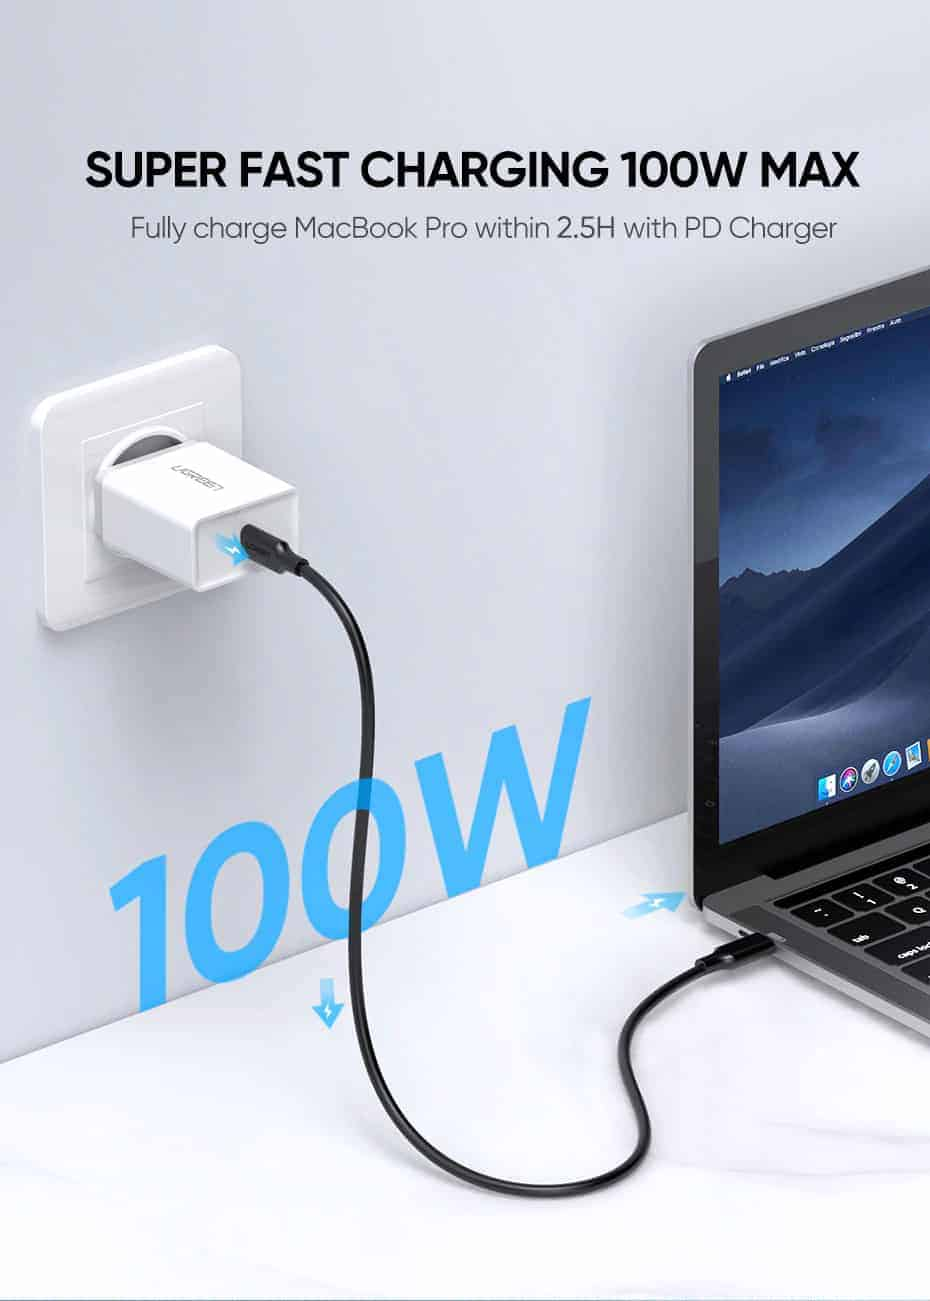 Ugreen 5A 100W USB C To USB C Cable 3.1 Gen 2_Super Fast Charging 100W Max